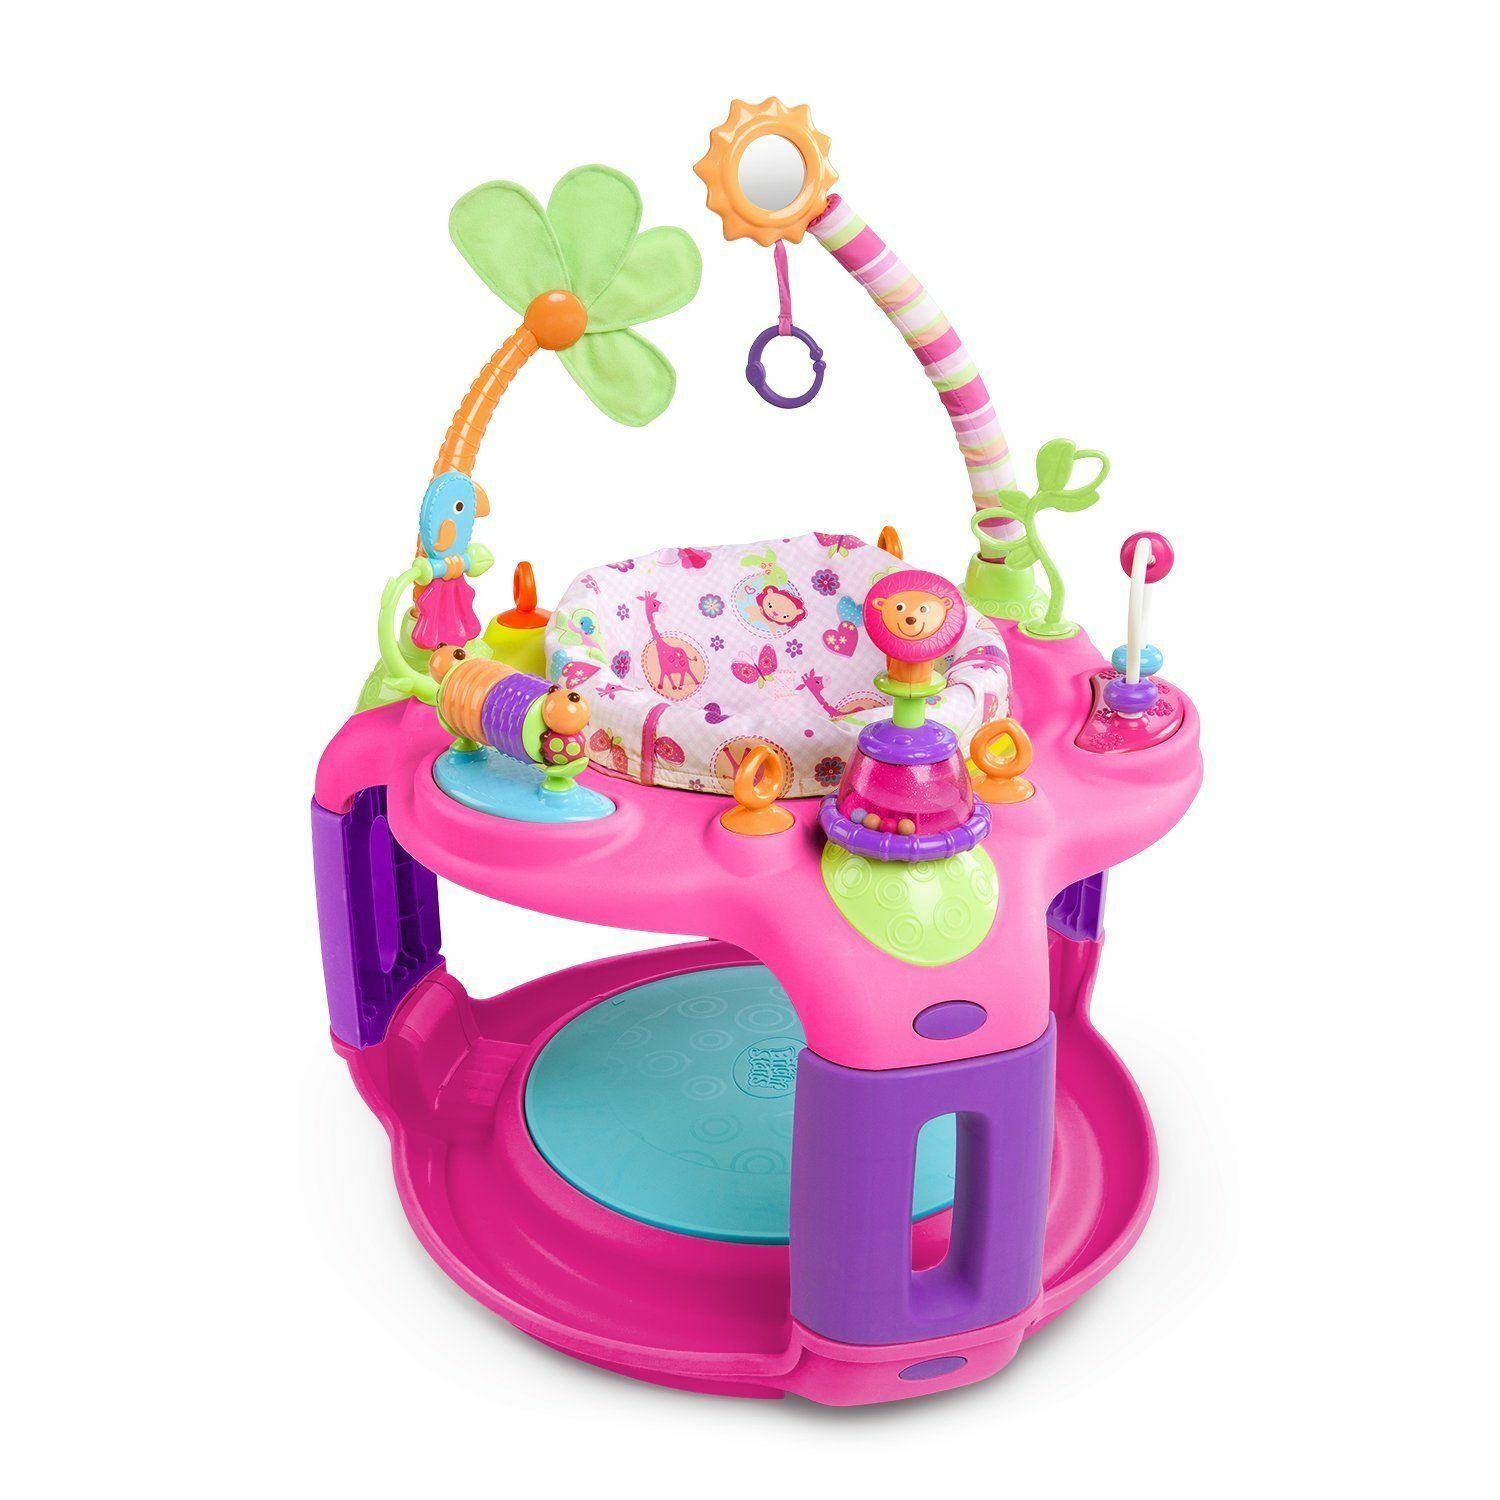 Picture of: Baby Activity Centers For Sale In Stock Ebay